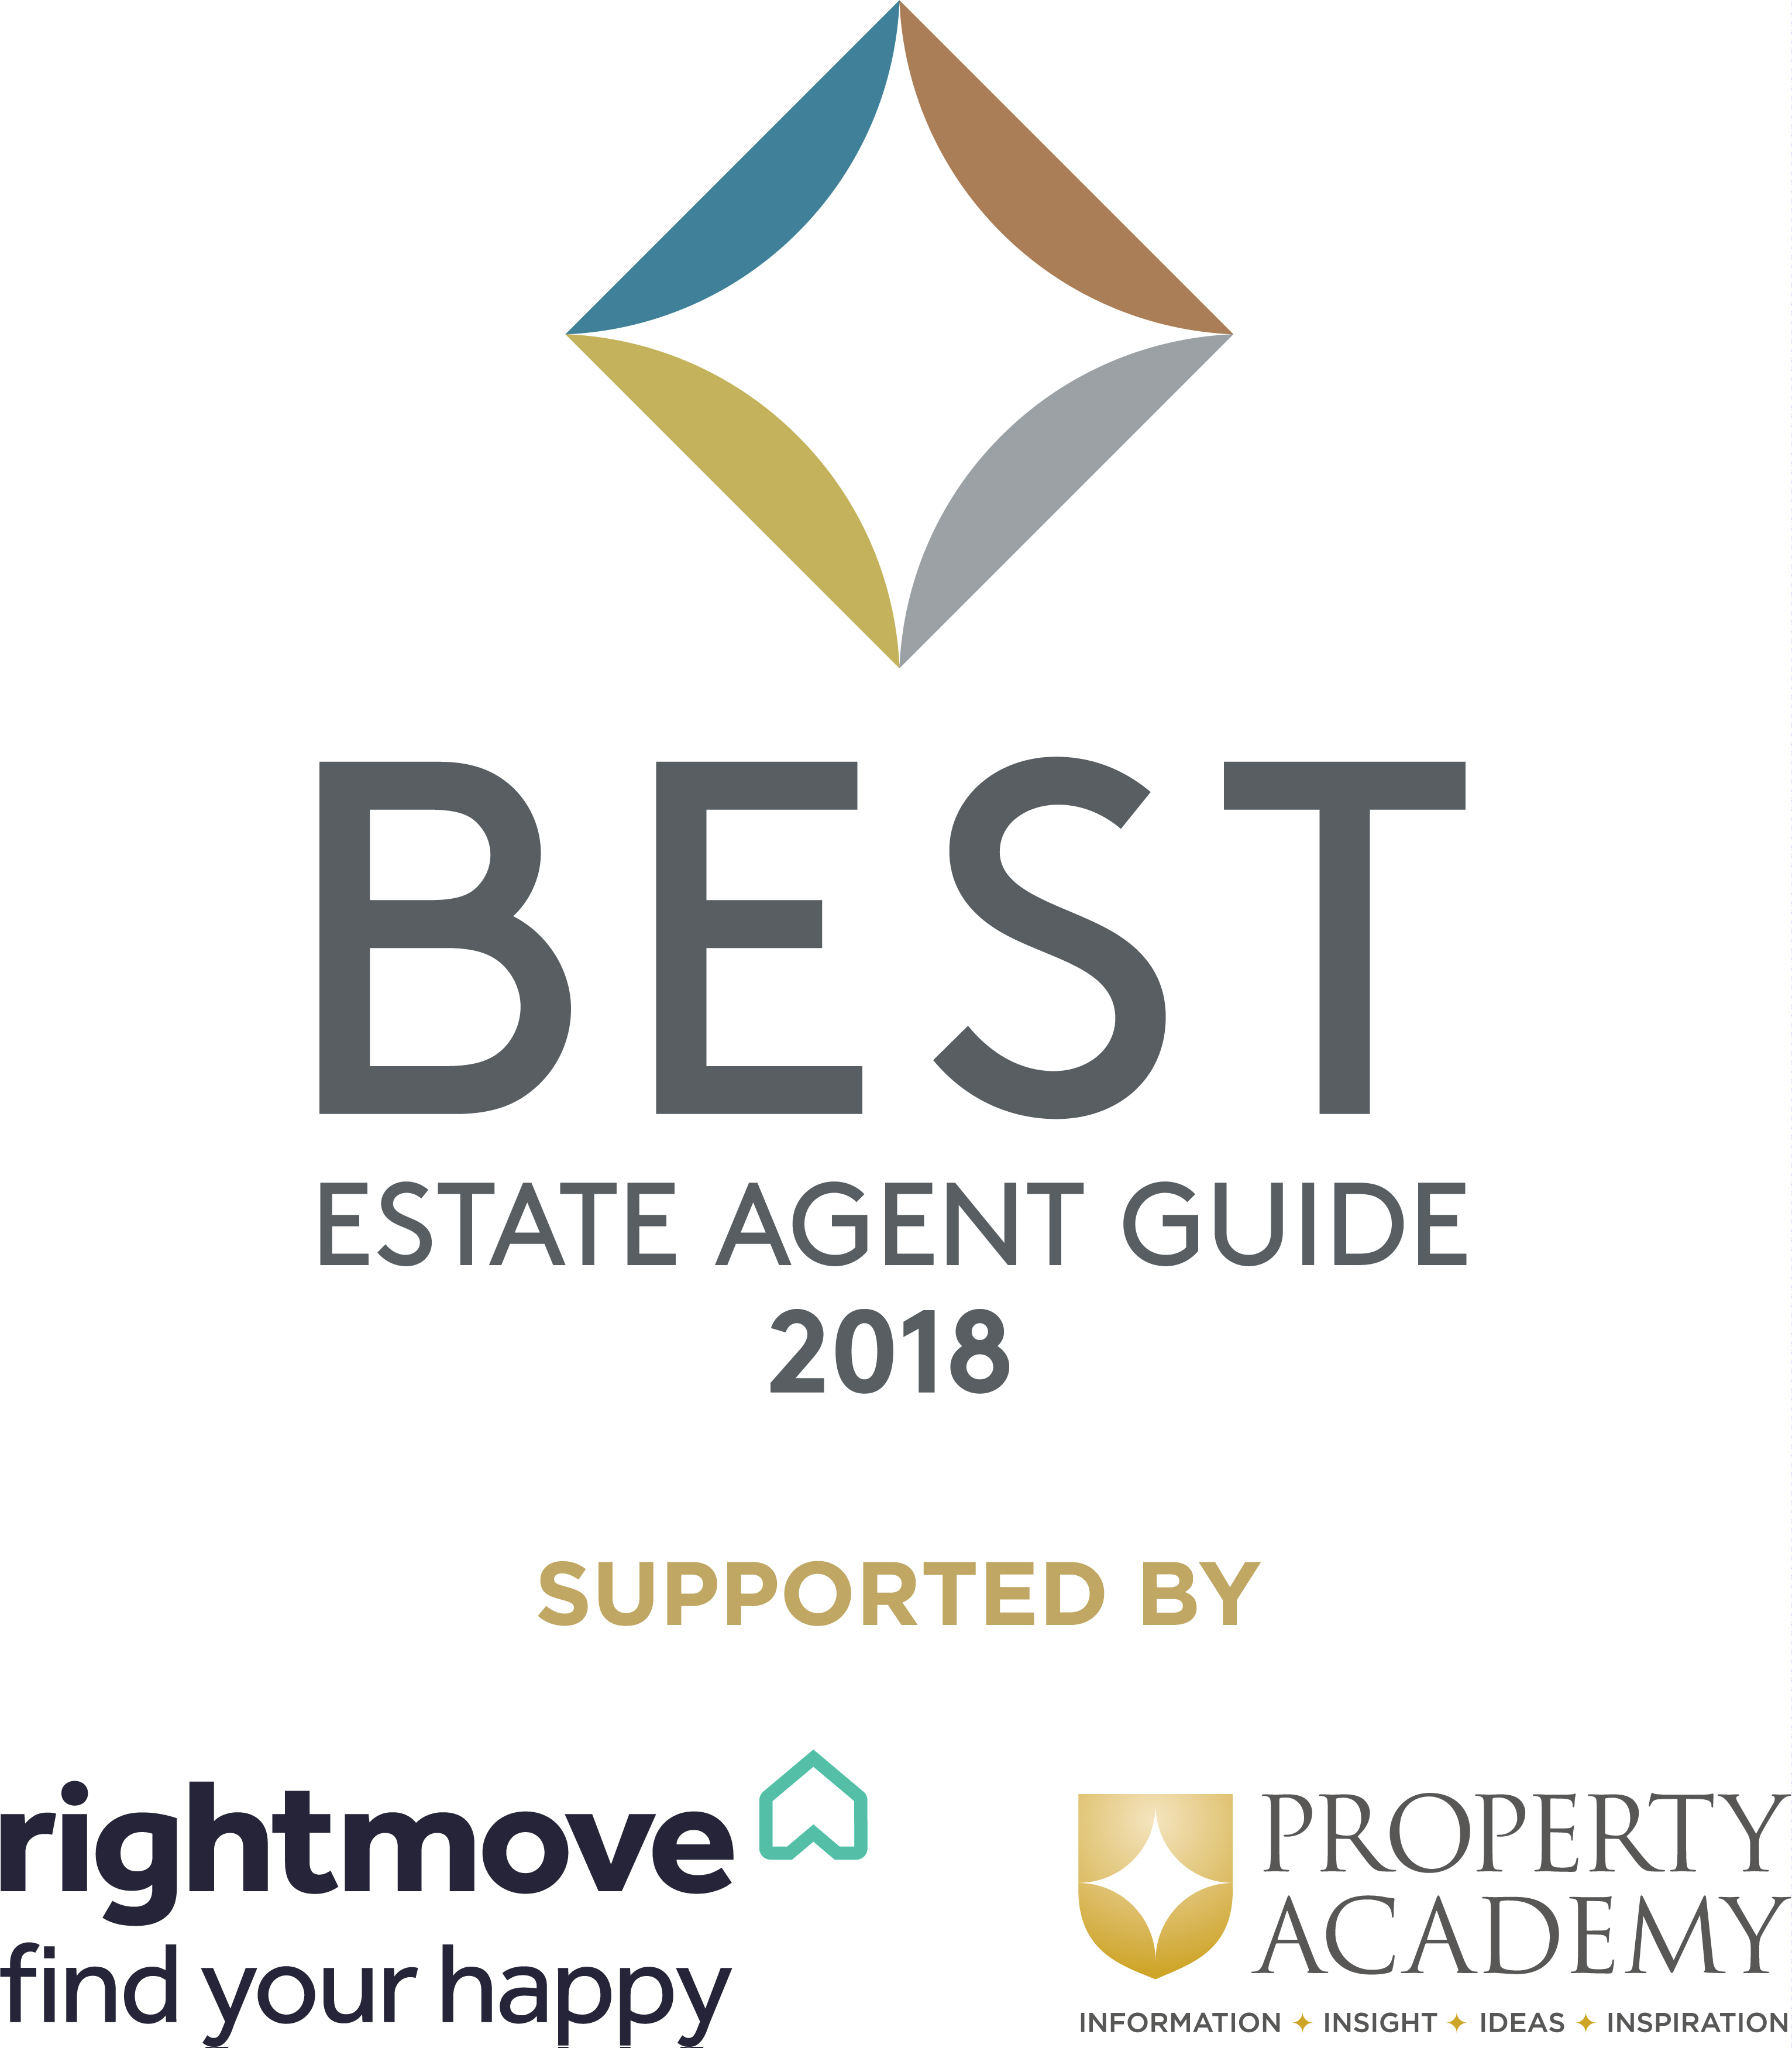 Rightmove names Next Place as the Second Best in the Country!!